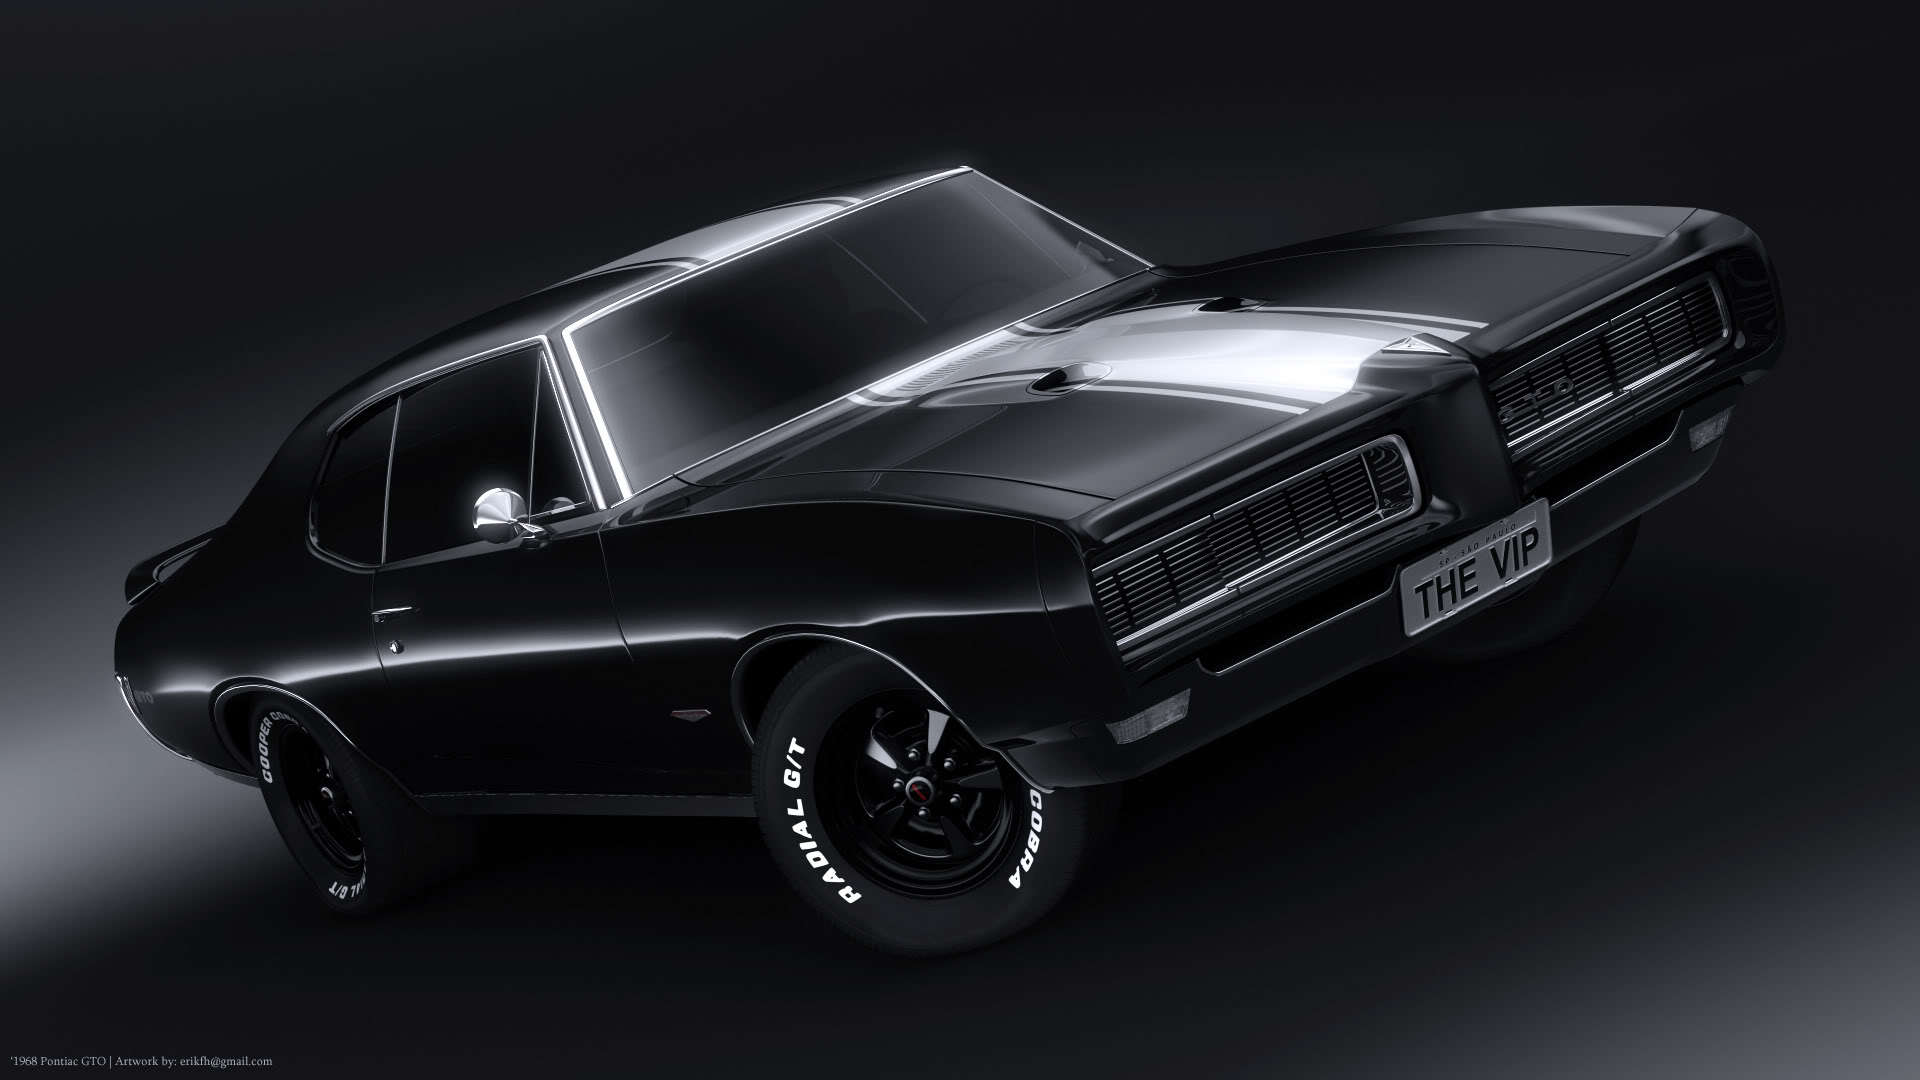 New car Pontiac GTO wallpapers and images 1920x1080